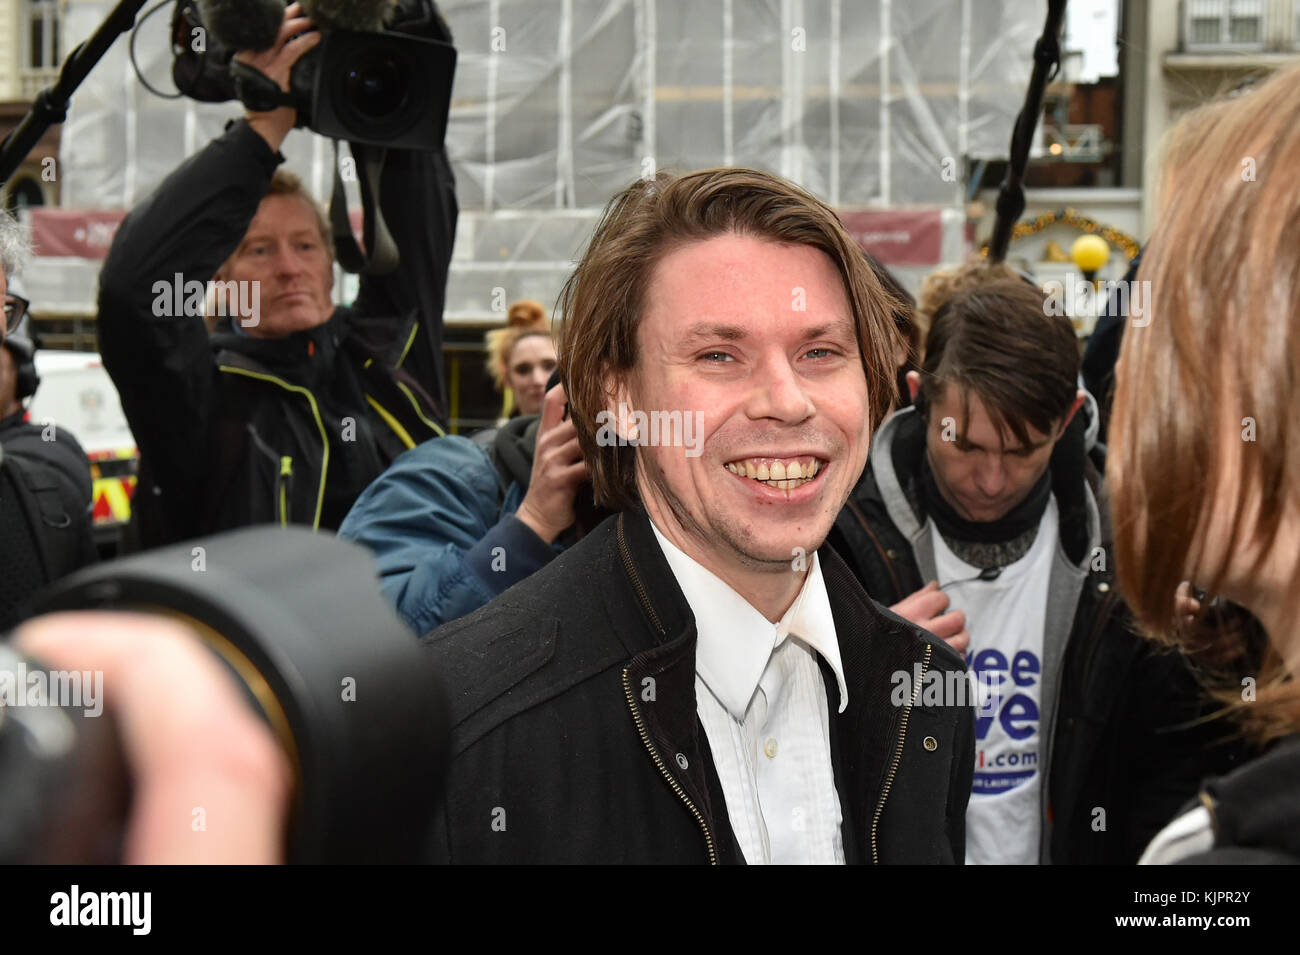 London, United Kingdom. 29 November 2017. Lauri Love arrives at the Royal Courts of Justice in central London for Stock Photo